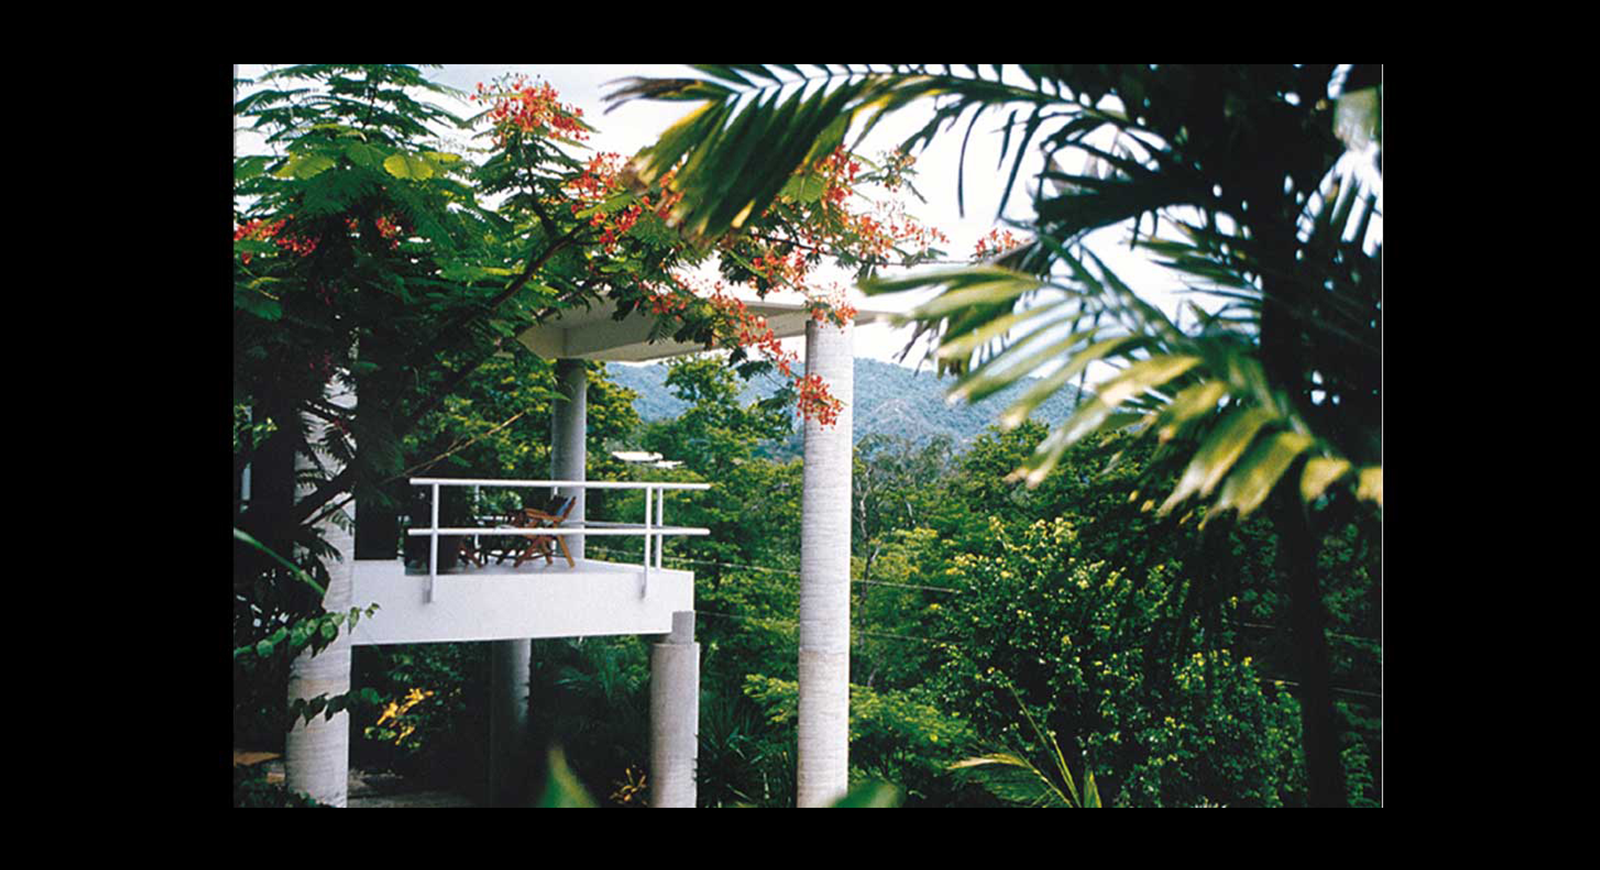 Terry_tropical_architecture_costa_rica1-1